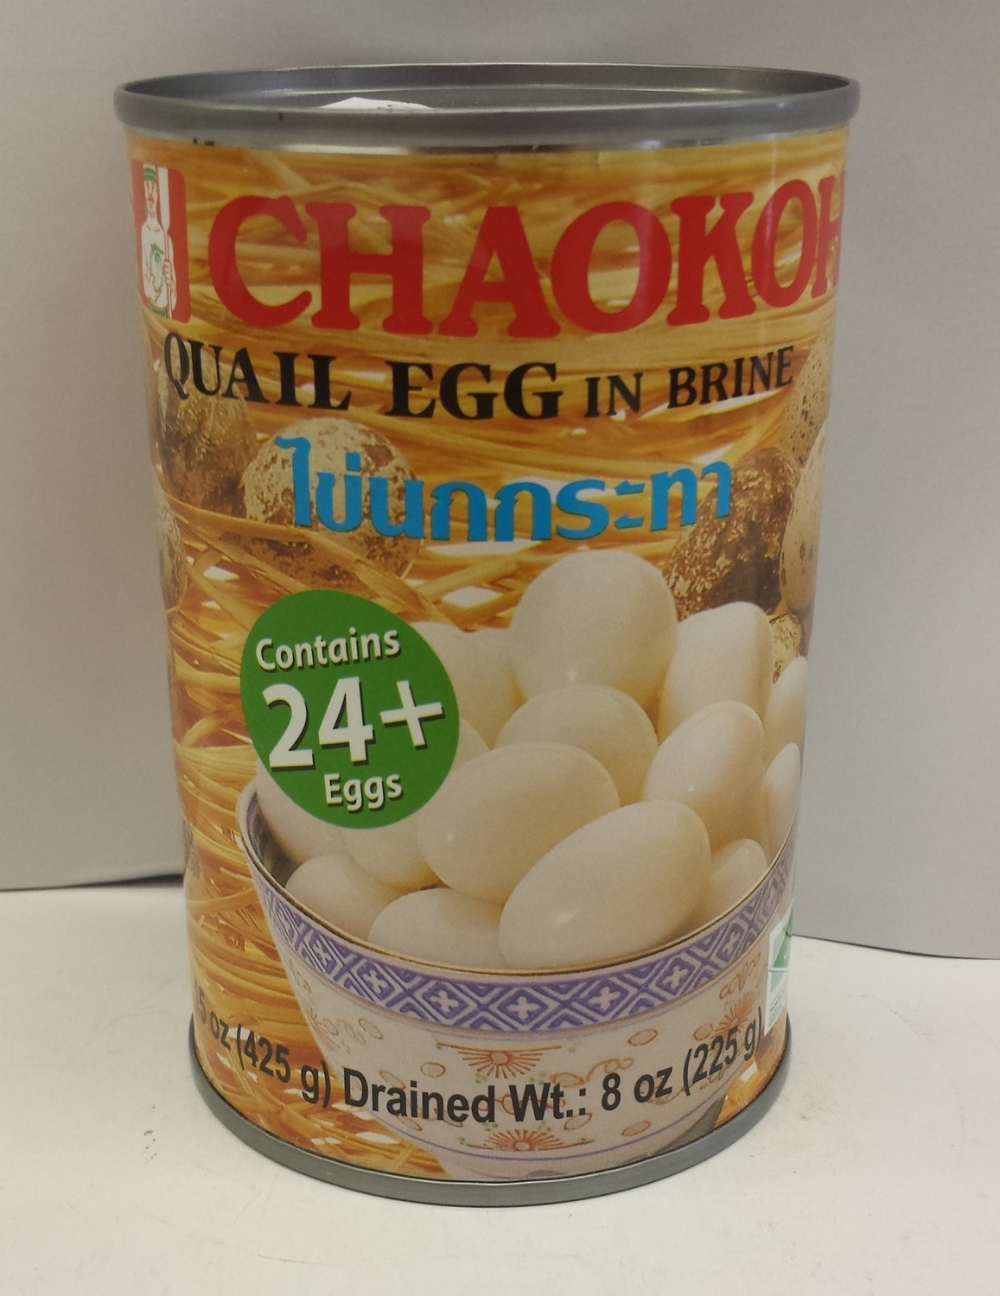 Quail Egg in Brine    Chaokoh   MC16201 24x15 oz